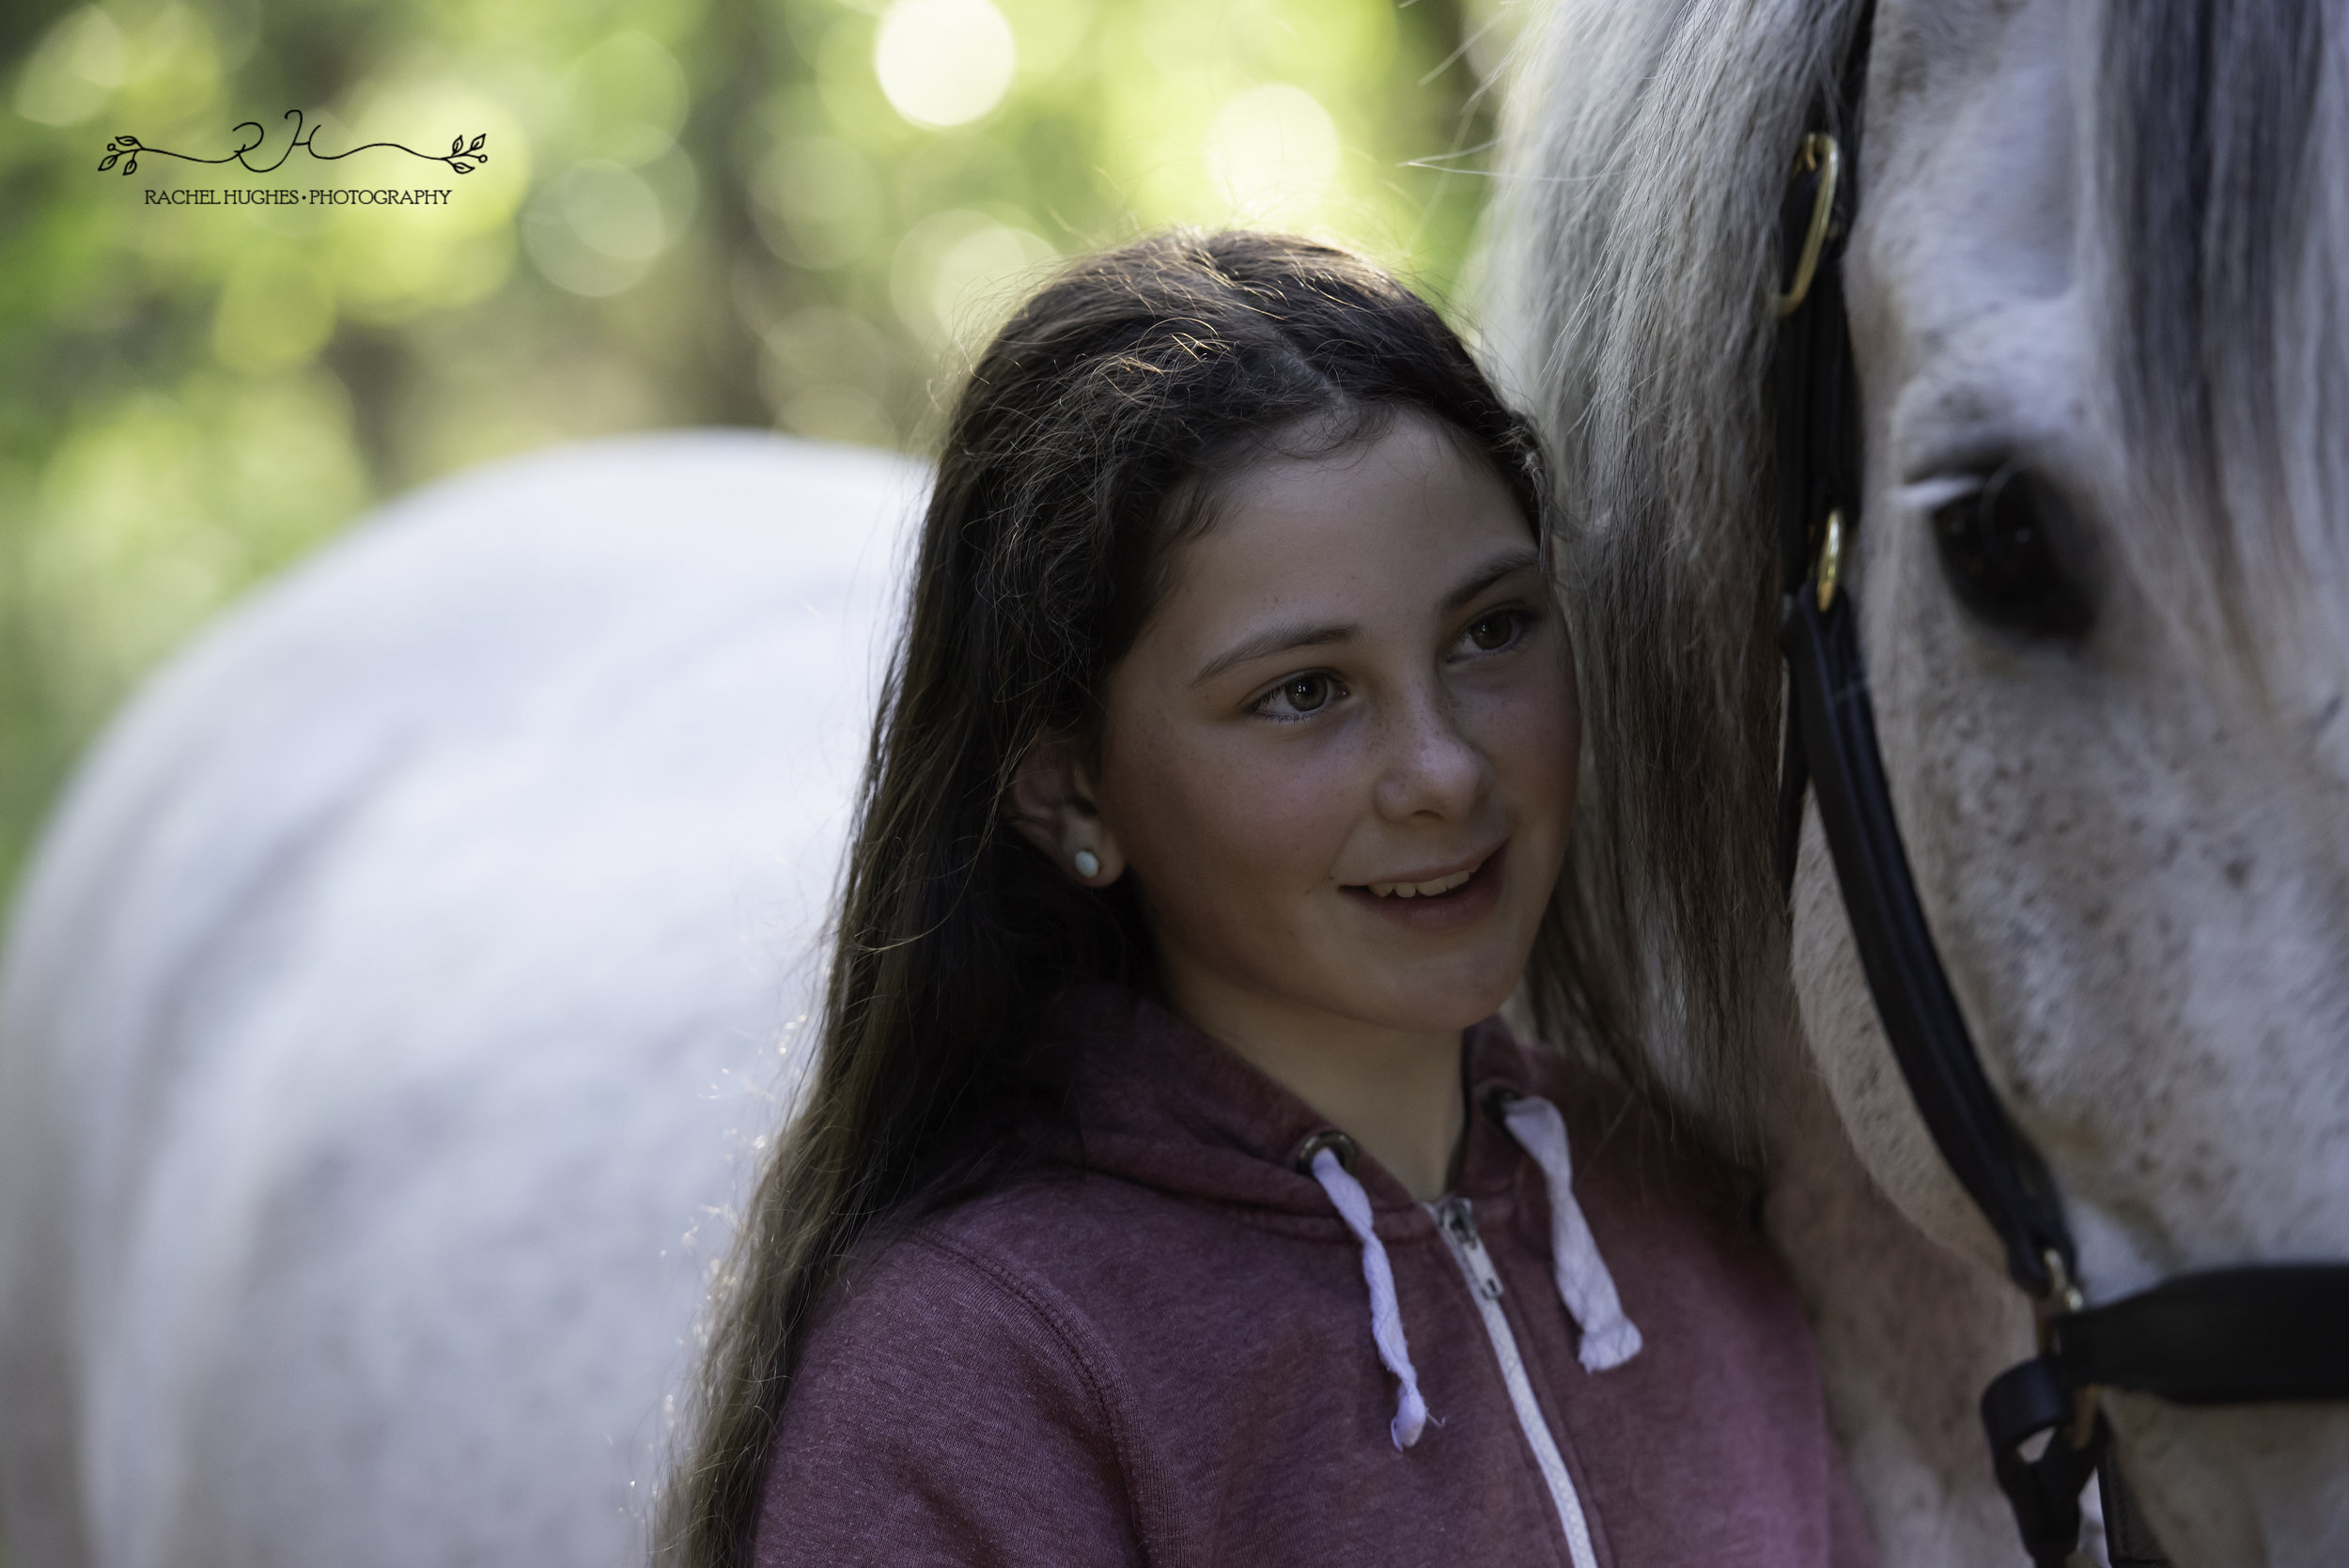 Jersey photographer - girl smiling at horse in Noirmont forest